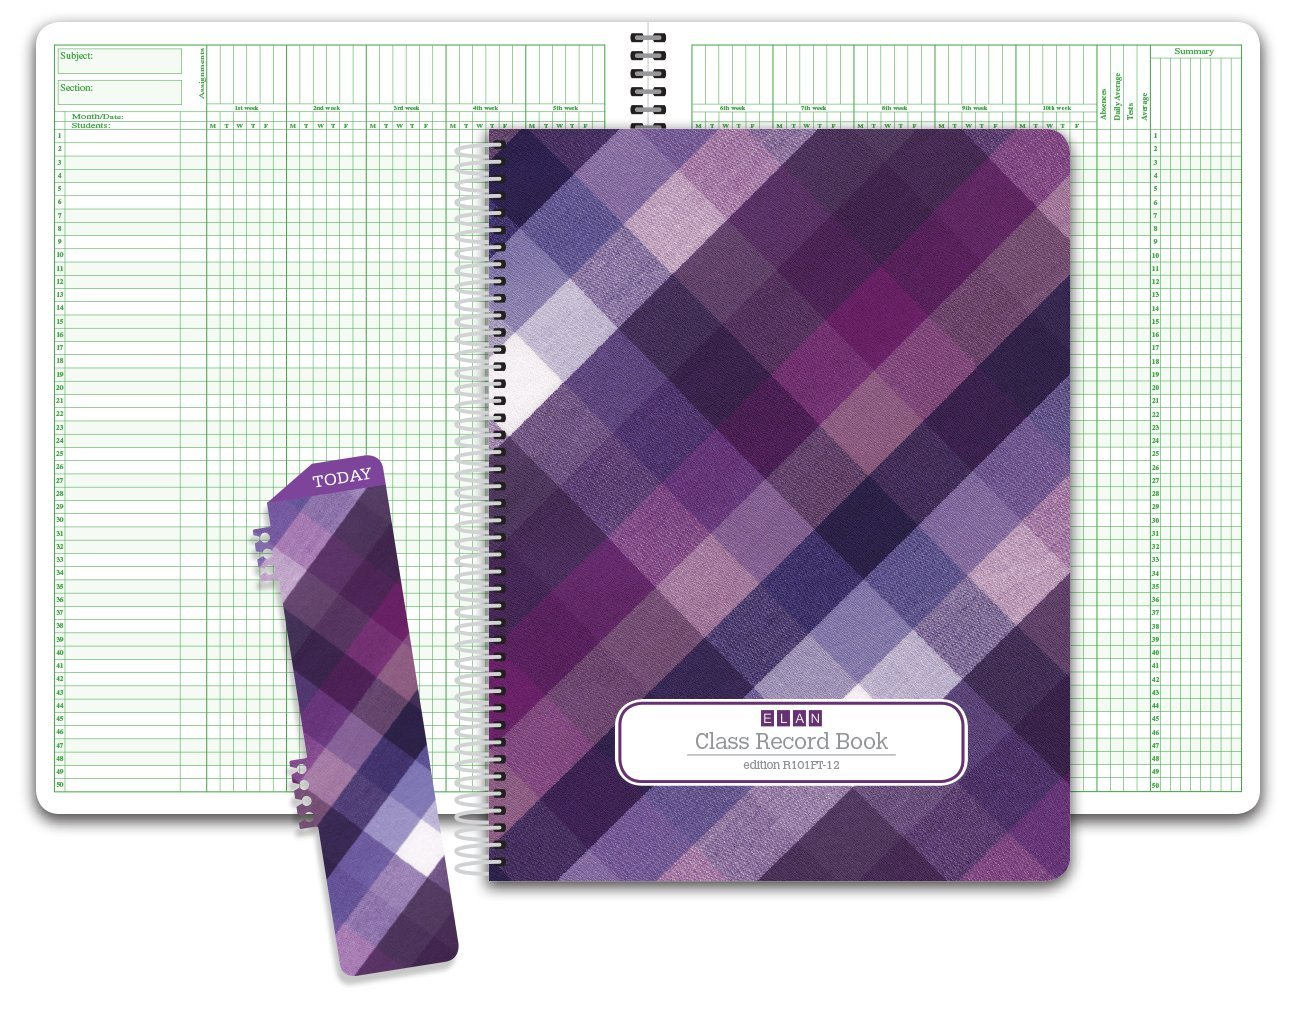 Class Record Book for 9-10 Weeks. 50 Names R1010 (Purple Plaid) by ELAN Publishing Company